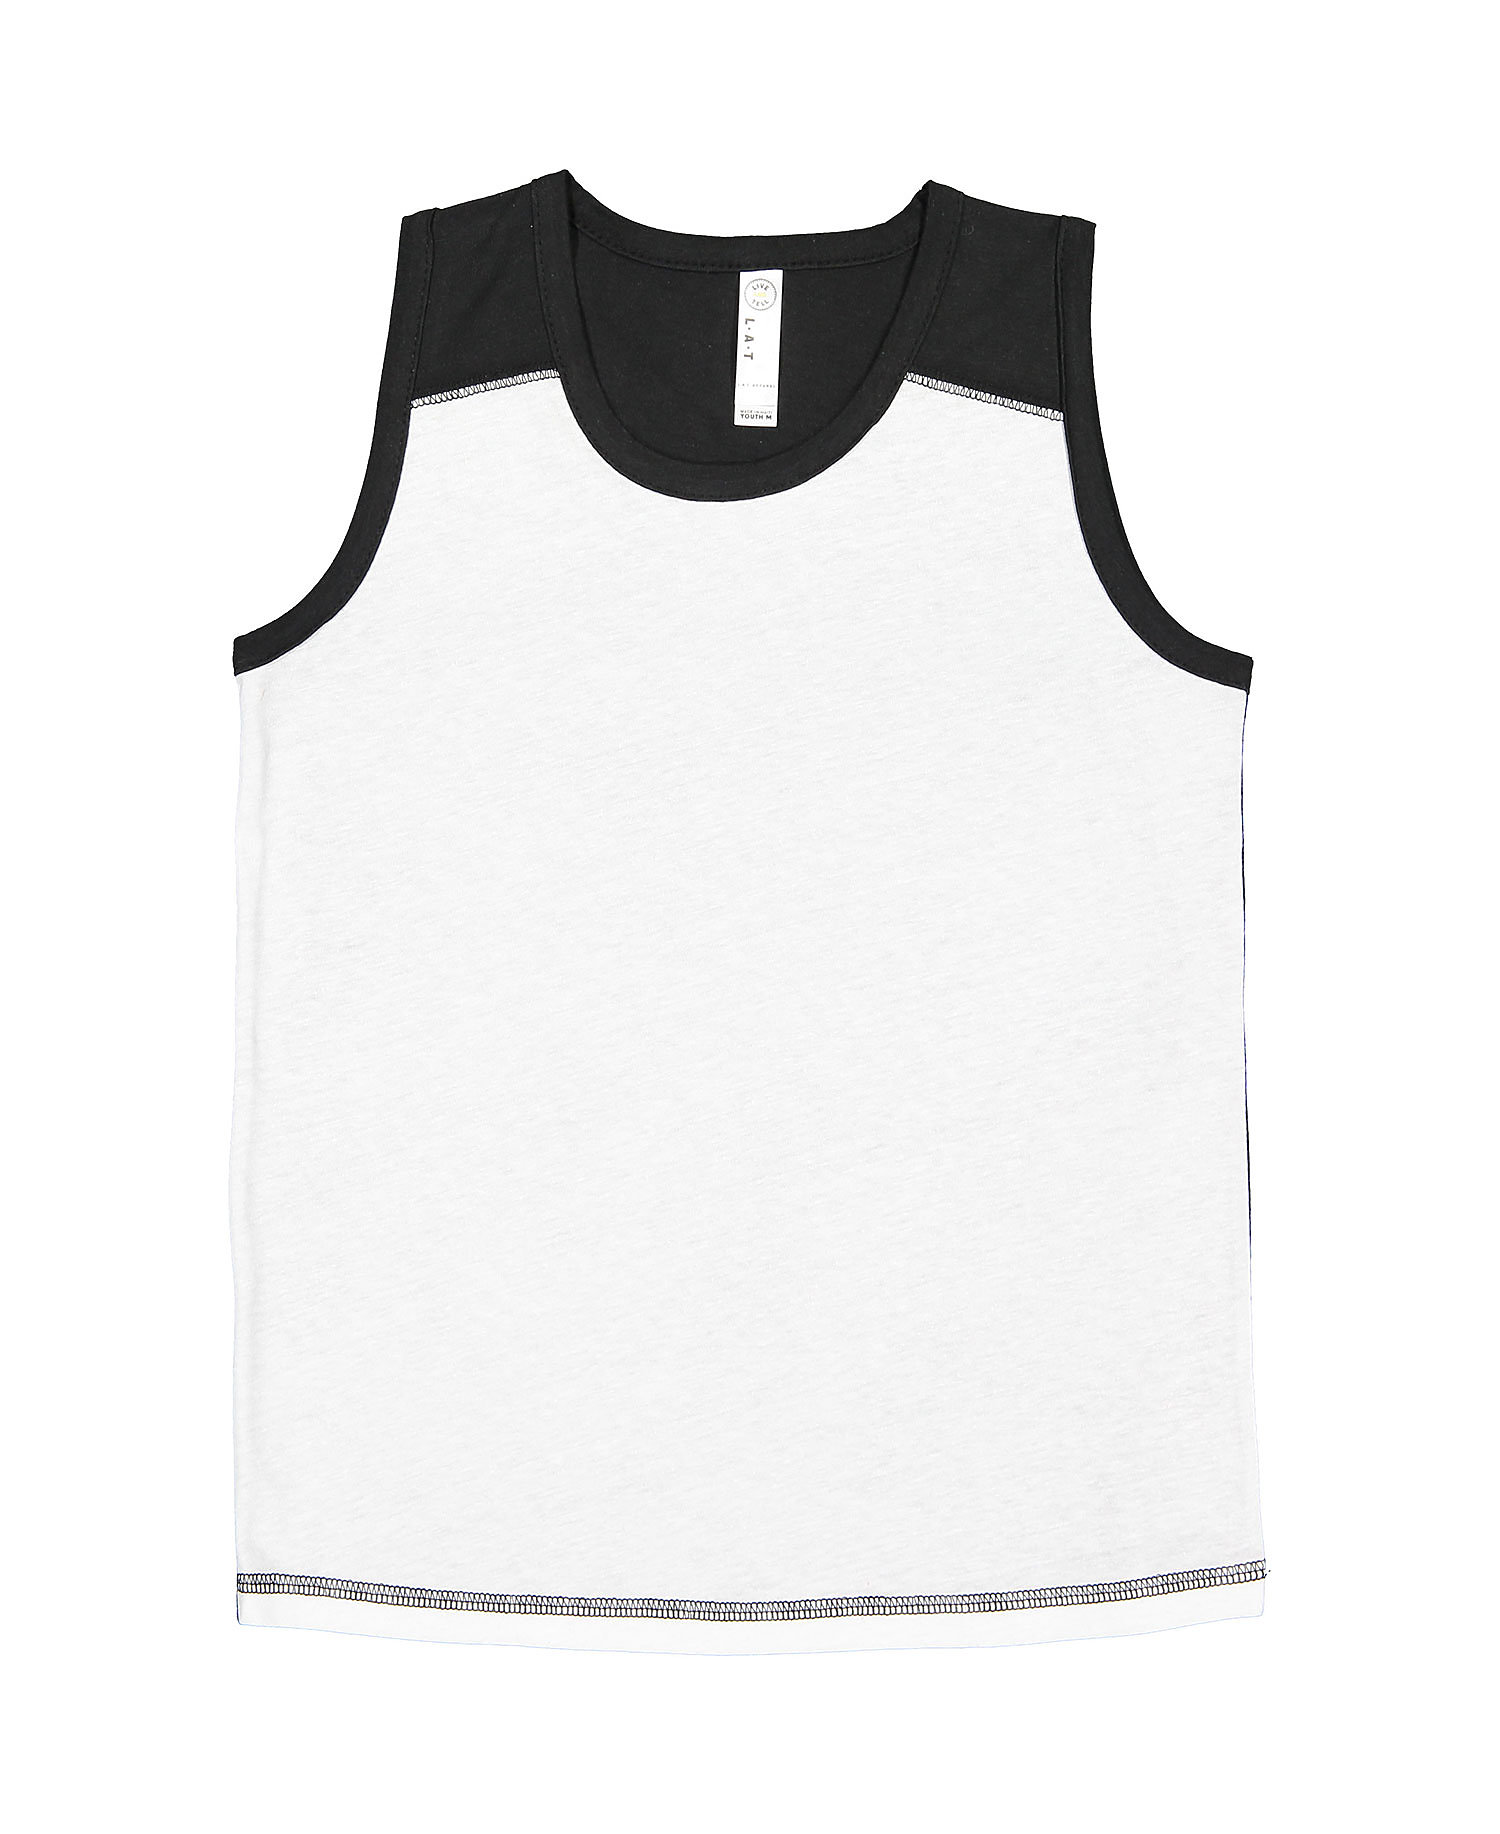 LAT 6119 - Youth Contrast Back Fine Jersey Tank